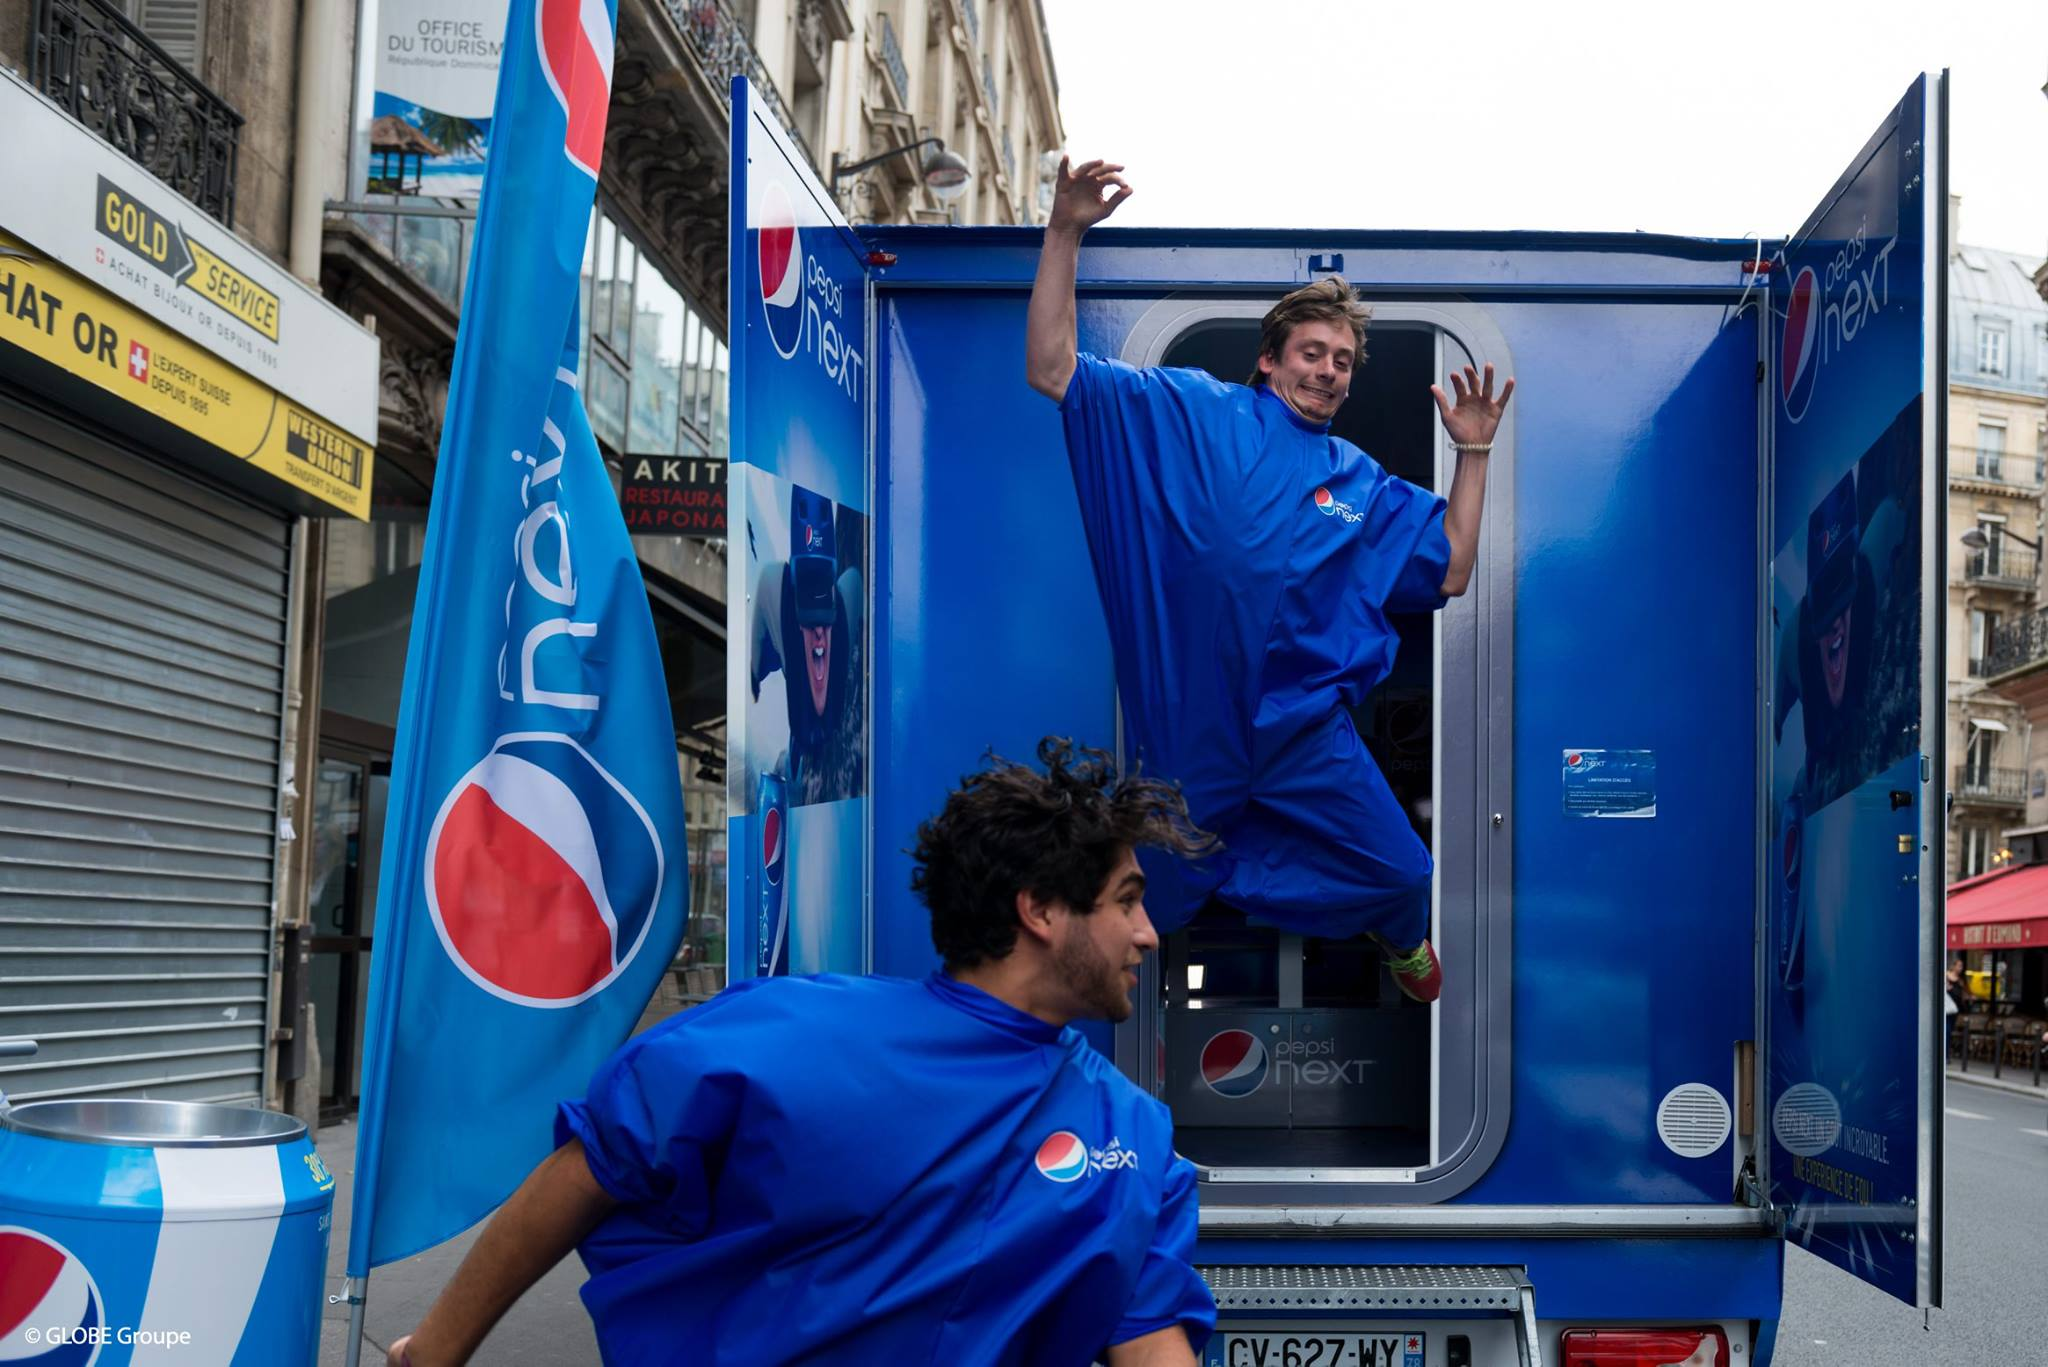 screenshot d'une campagne de street marketing Pepsi next cabine photographique